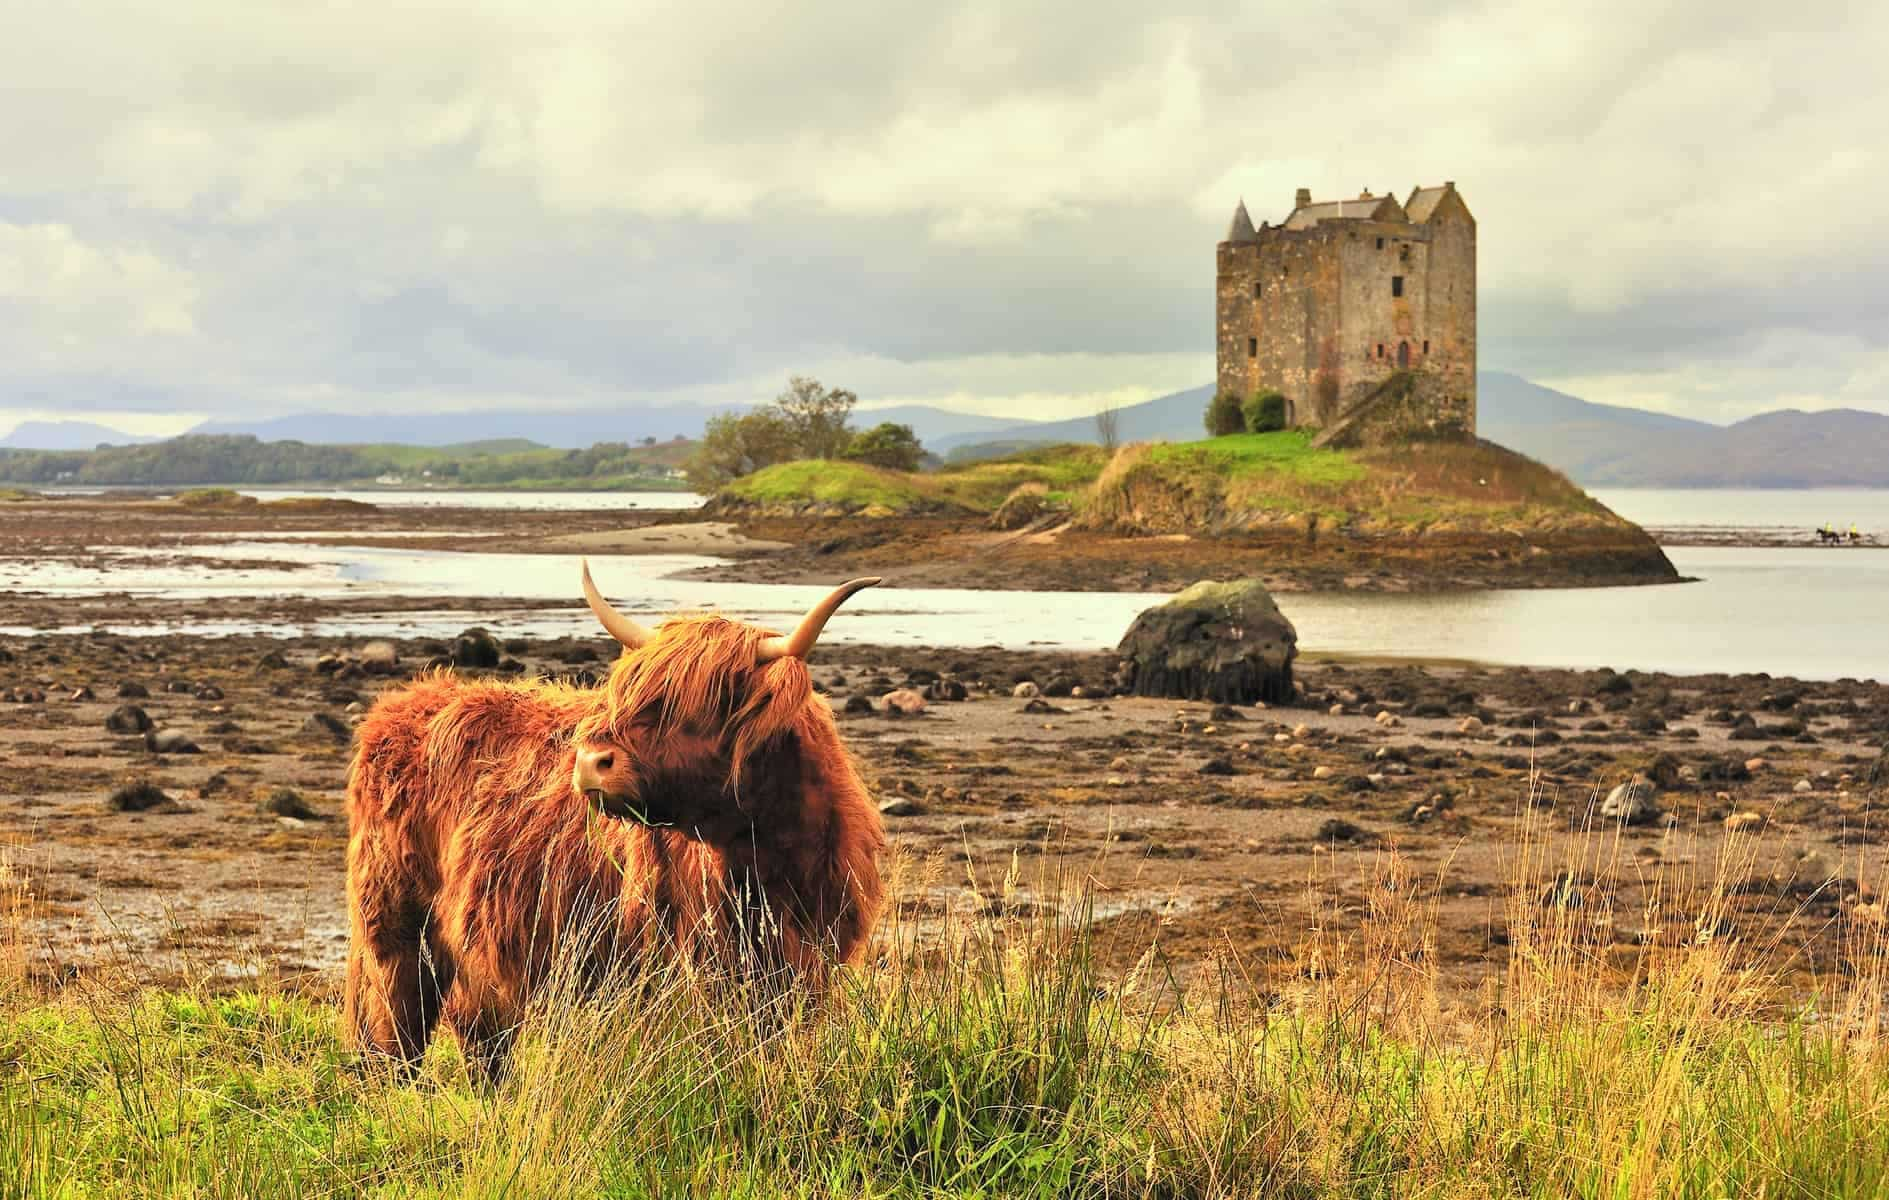 Slotte i Skotland. A lone highland cow grazes on grass, with castle Stalker in the background. A classic Scottish image.